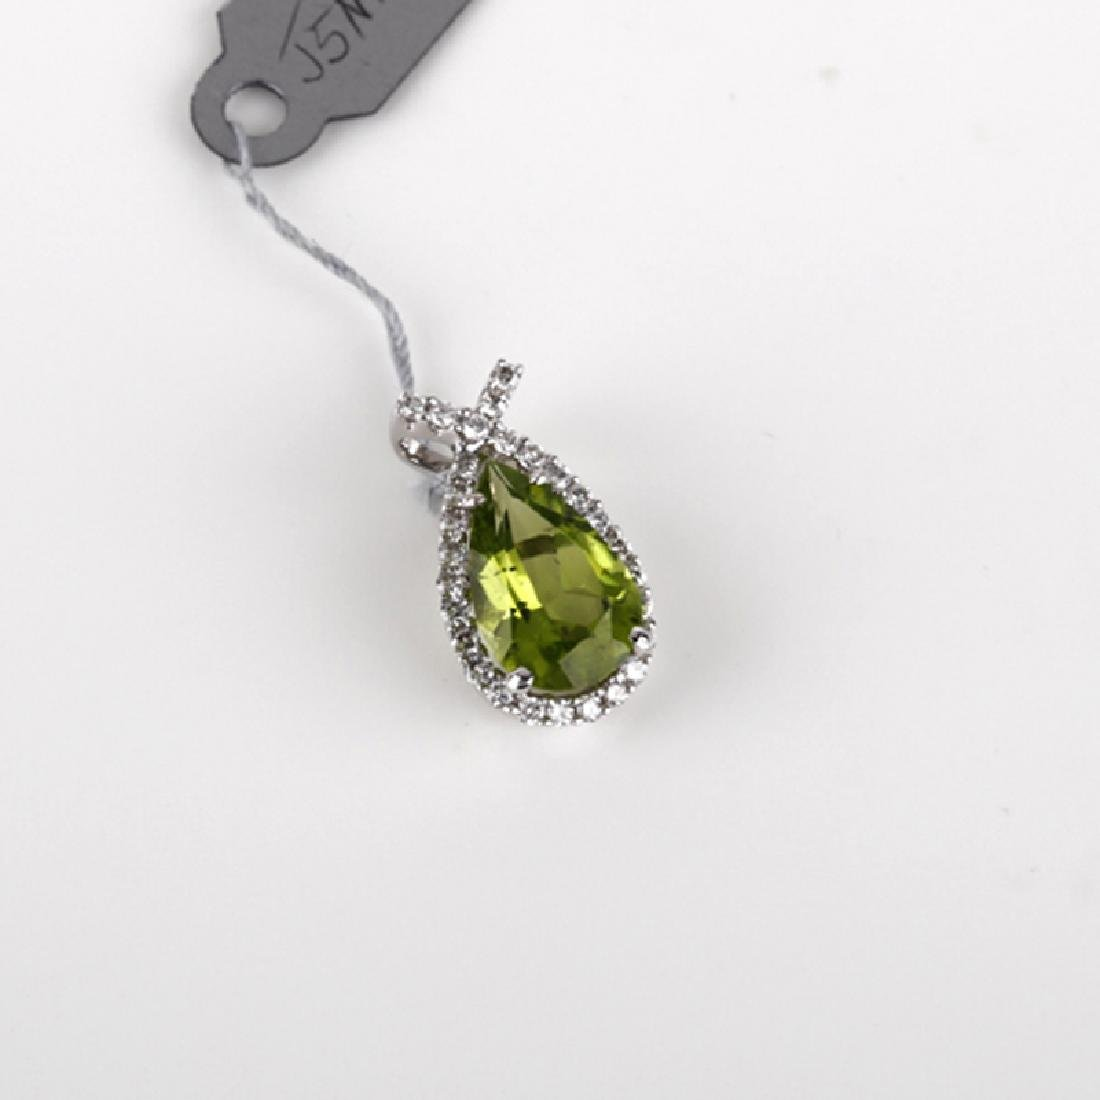 *Fine Jewelry 18KT Gold, 2.51CT Peridot And 0.32CT